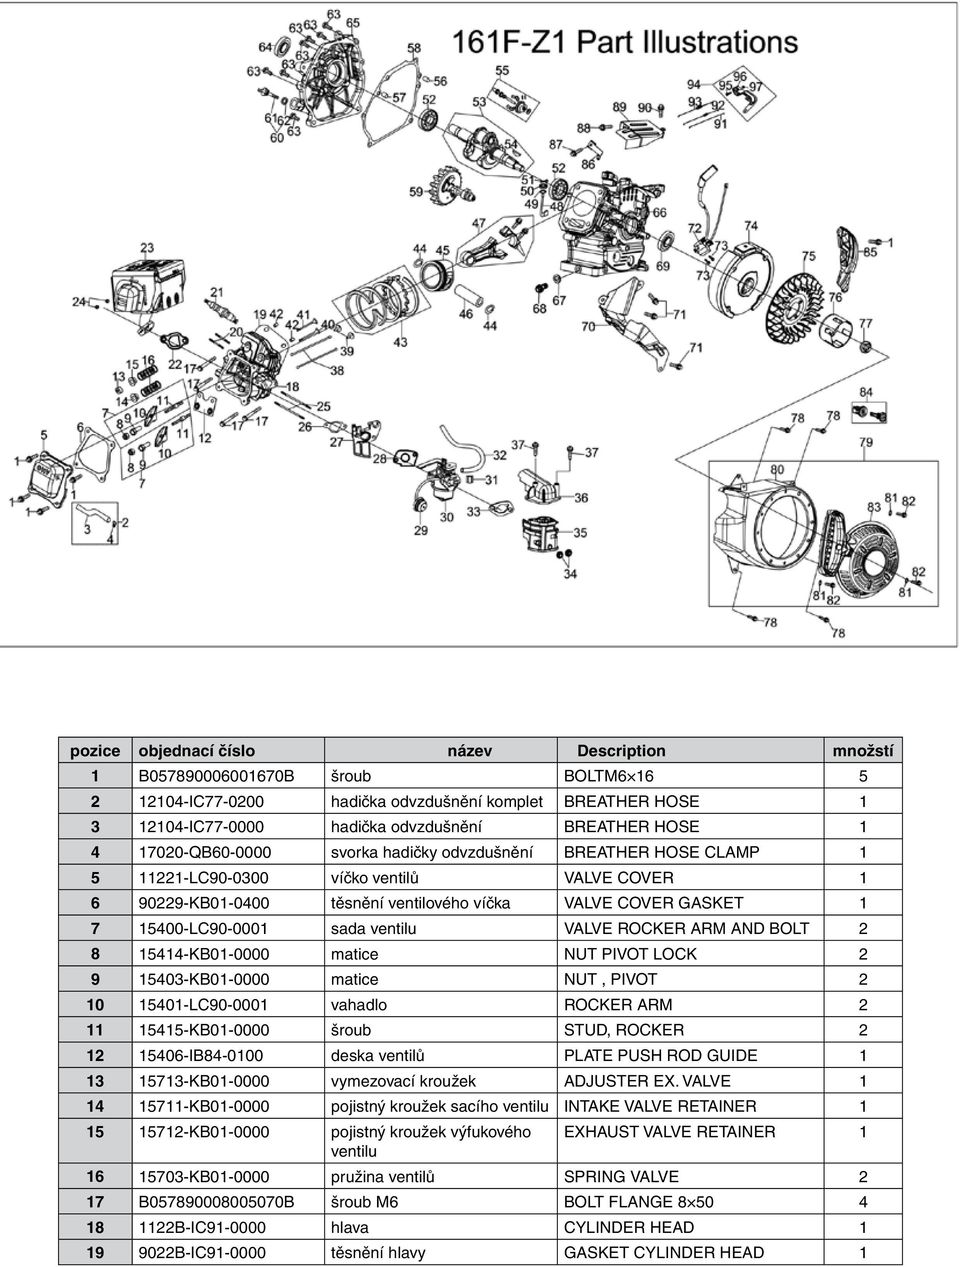 15400-LC90-0001 sada ventilu VALVE ROCKER ARM AND BOLT 2 8 15414-KB01-0000 matice NUT,PIVOT LOCK 2 9 15403-KB01-0000 matice NUT, PIVOT 2 10 15401-LC90-0001 vahadlo ROCKER ARM 2 11 15415-KB01-0000